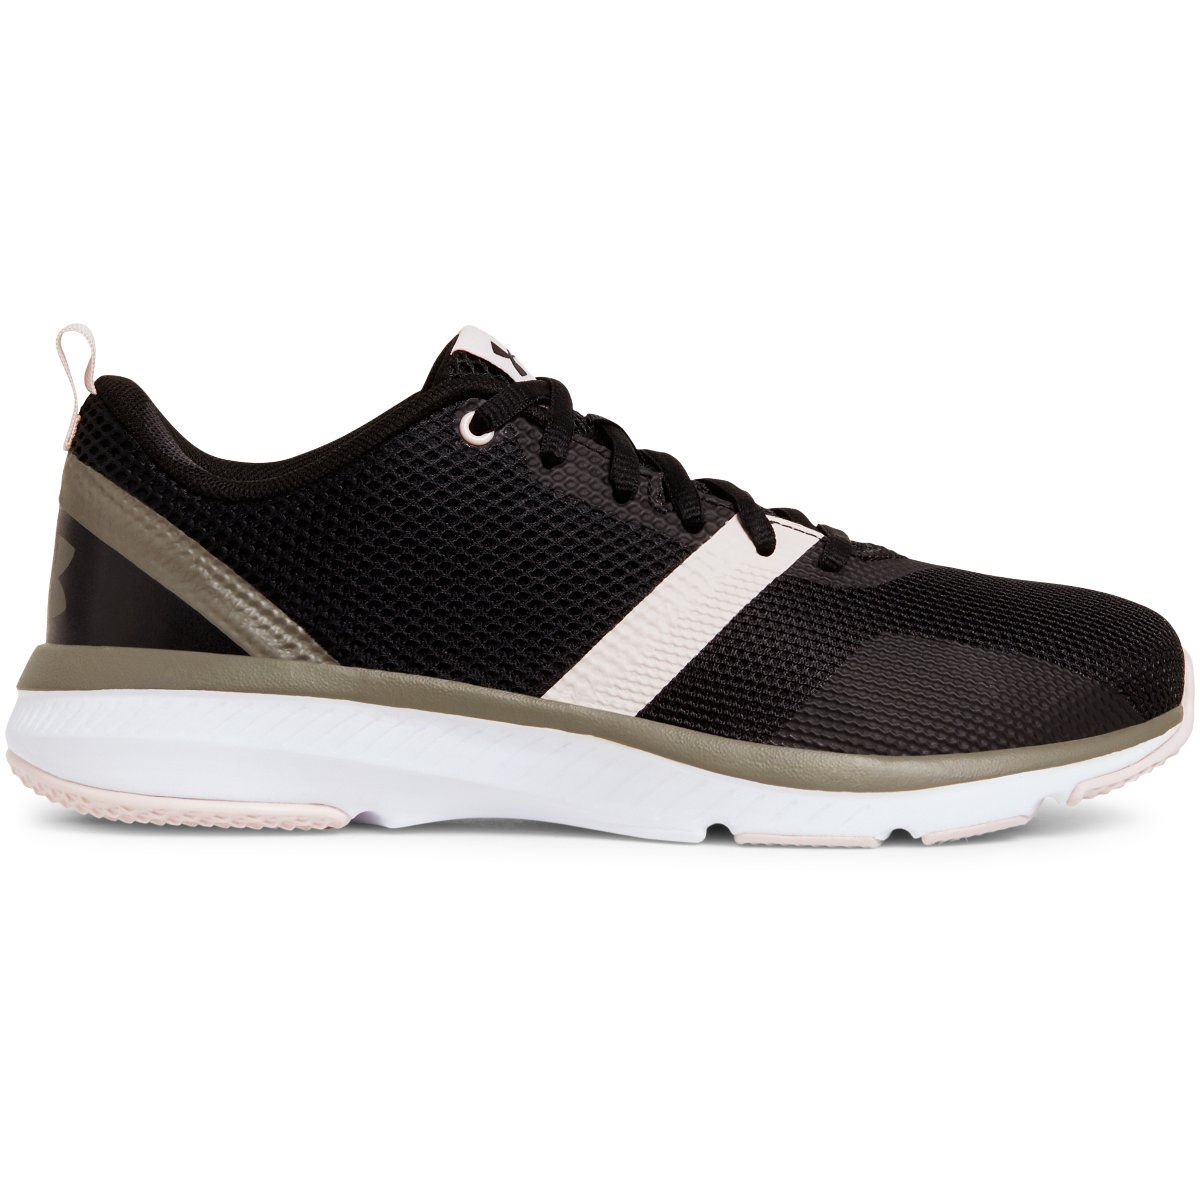 Chaussures Femme Under Armour Press 2 Training - 5 Black/French Gray